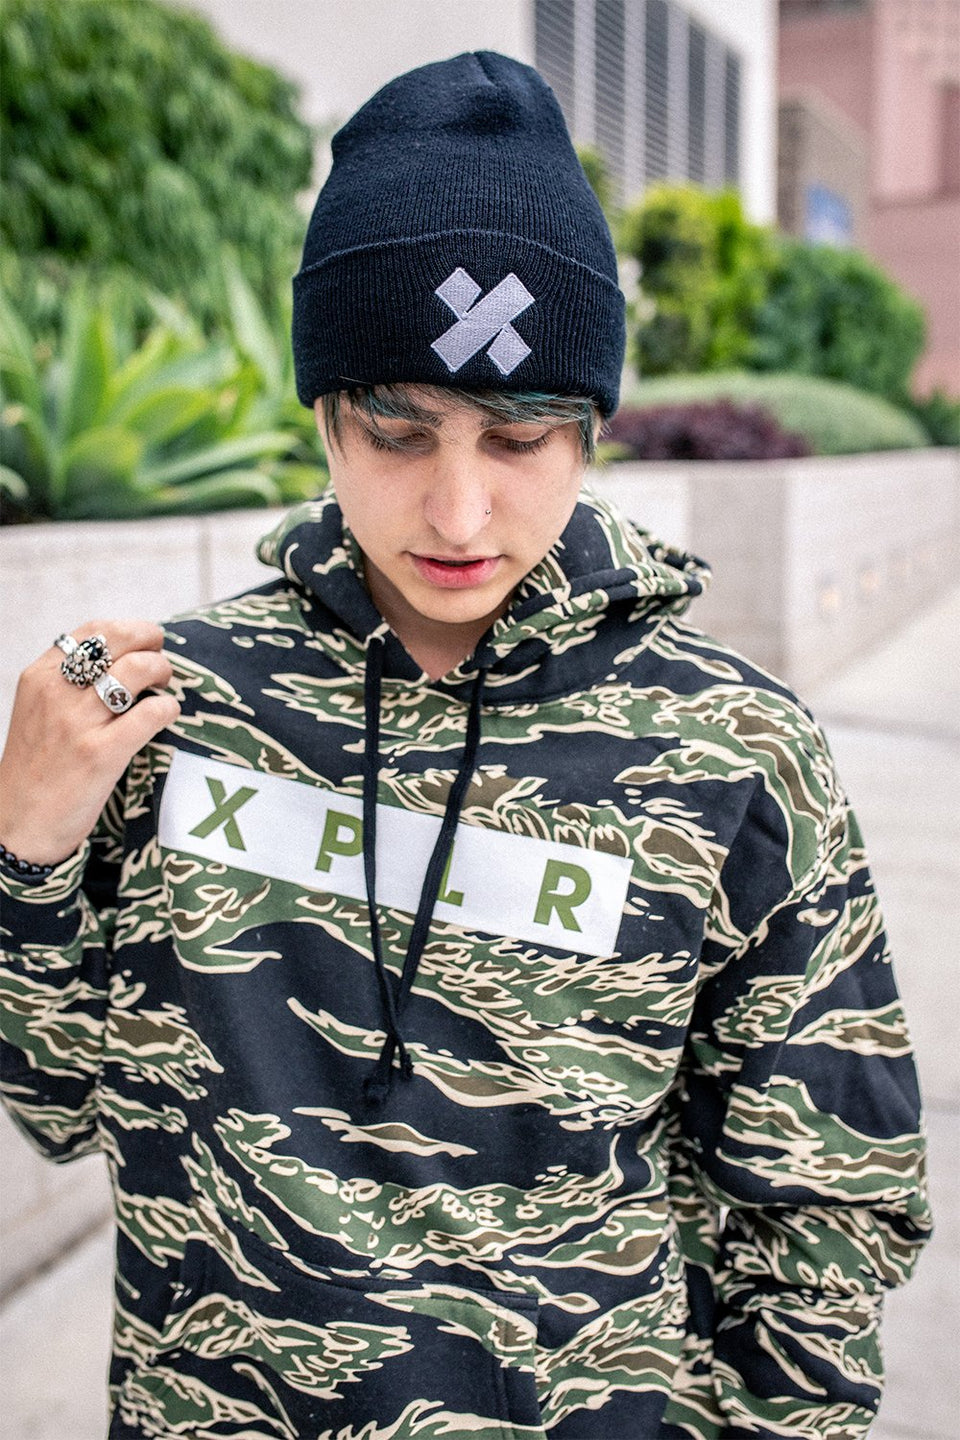 X P L R: LIMITED EDITION TIGER CAMO HOODIE